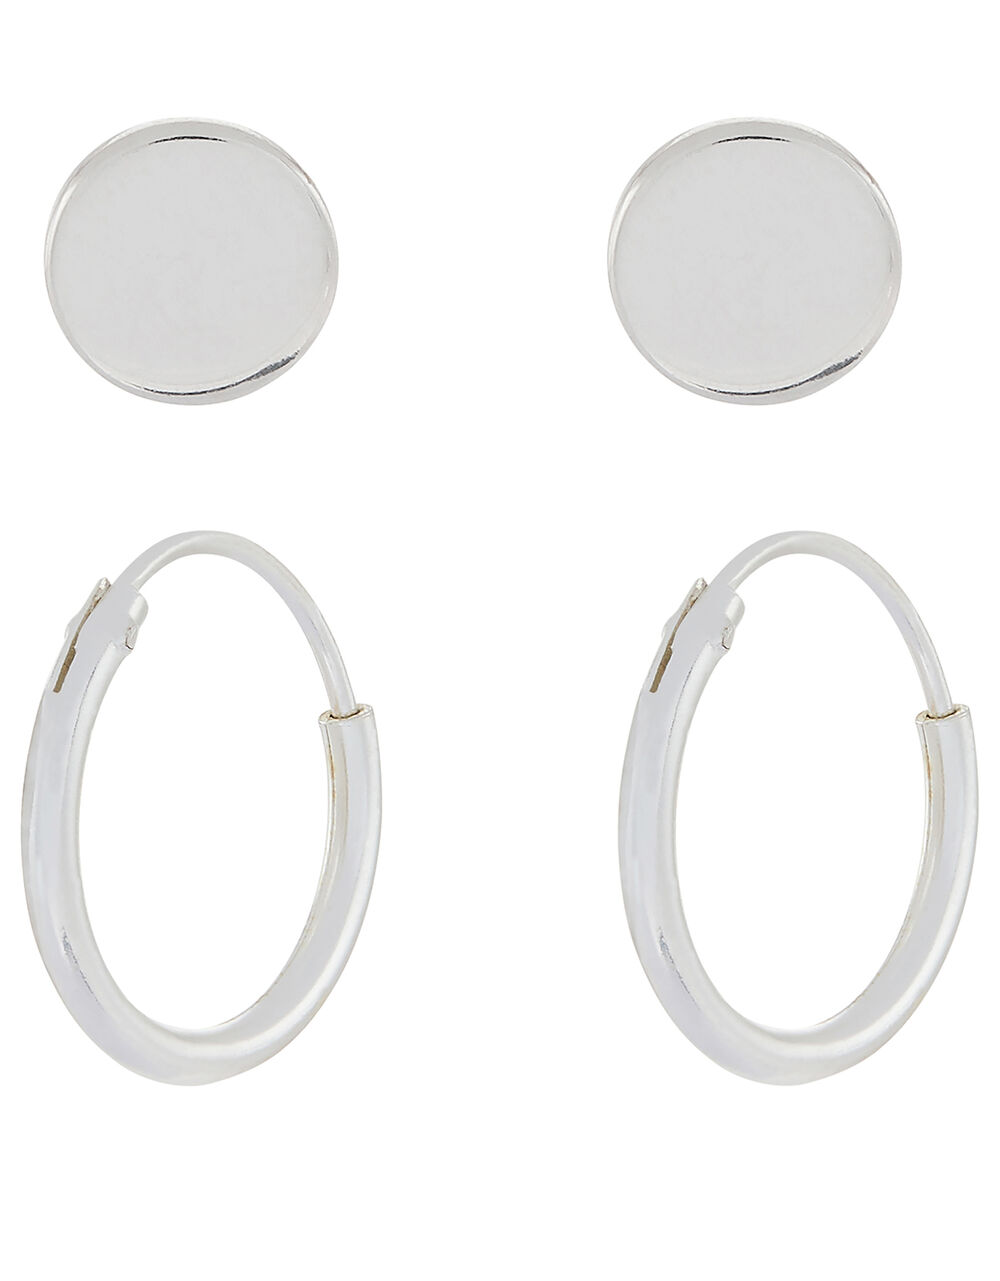 Sterling Silver Stud and Mini Hoop Set, , large